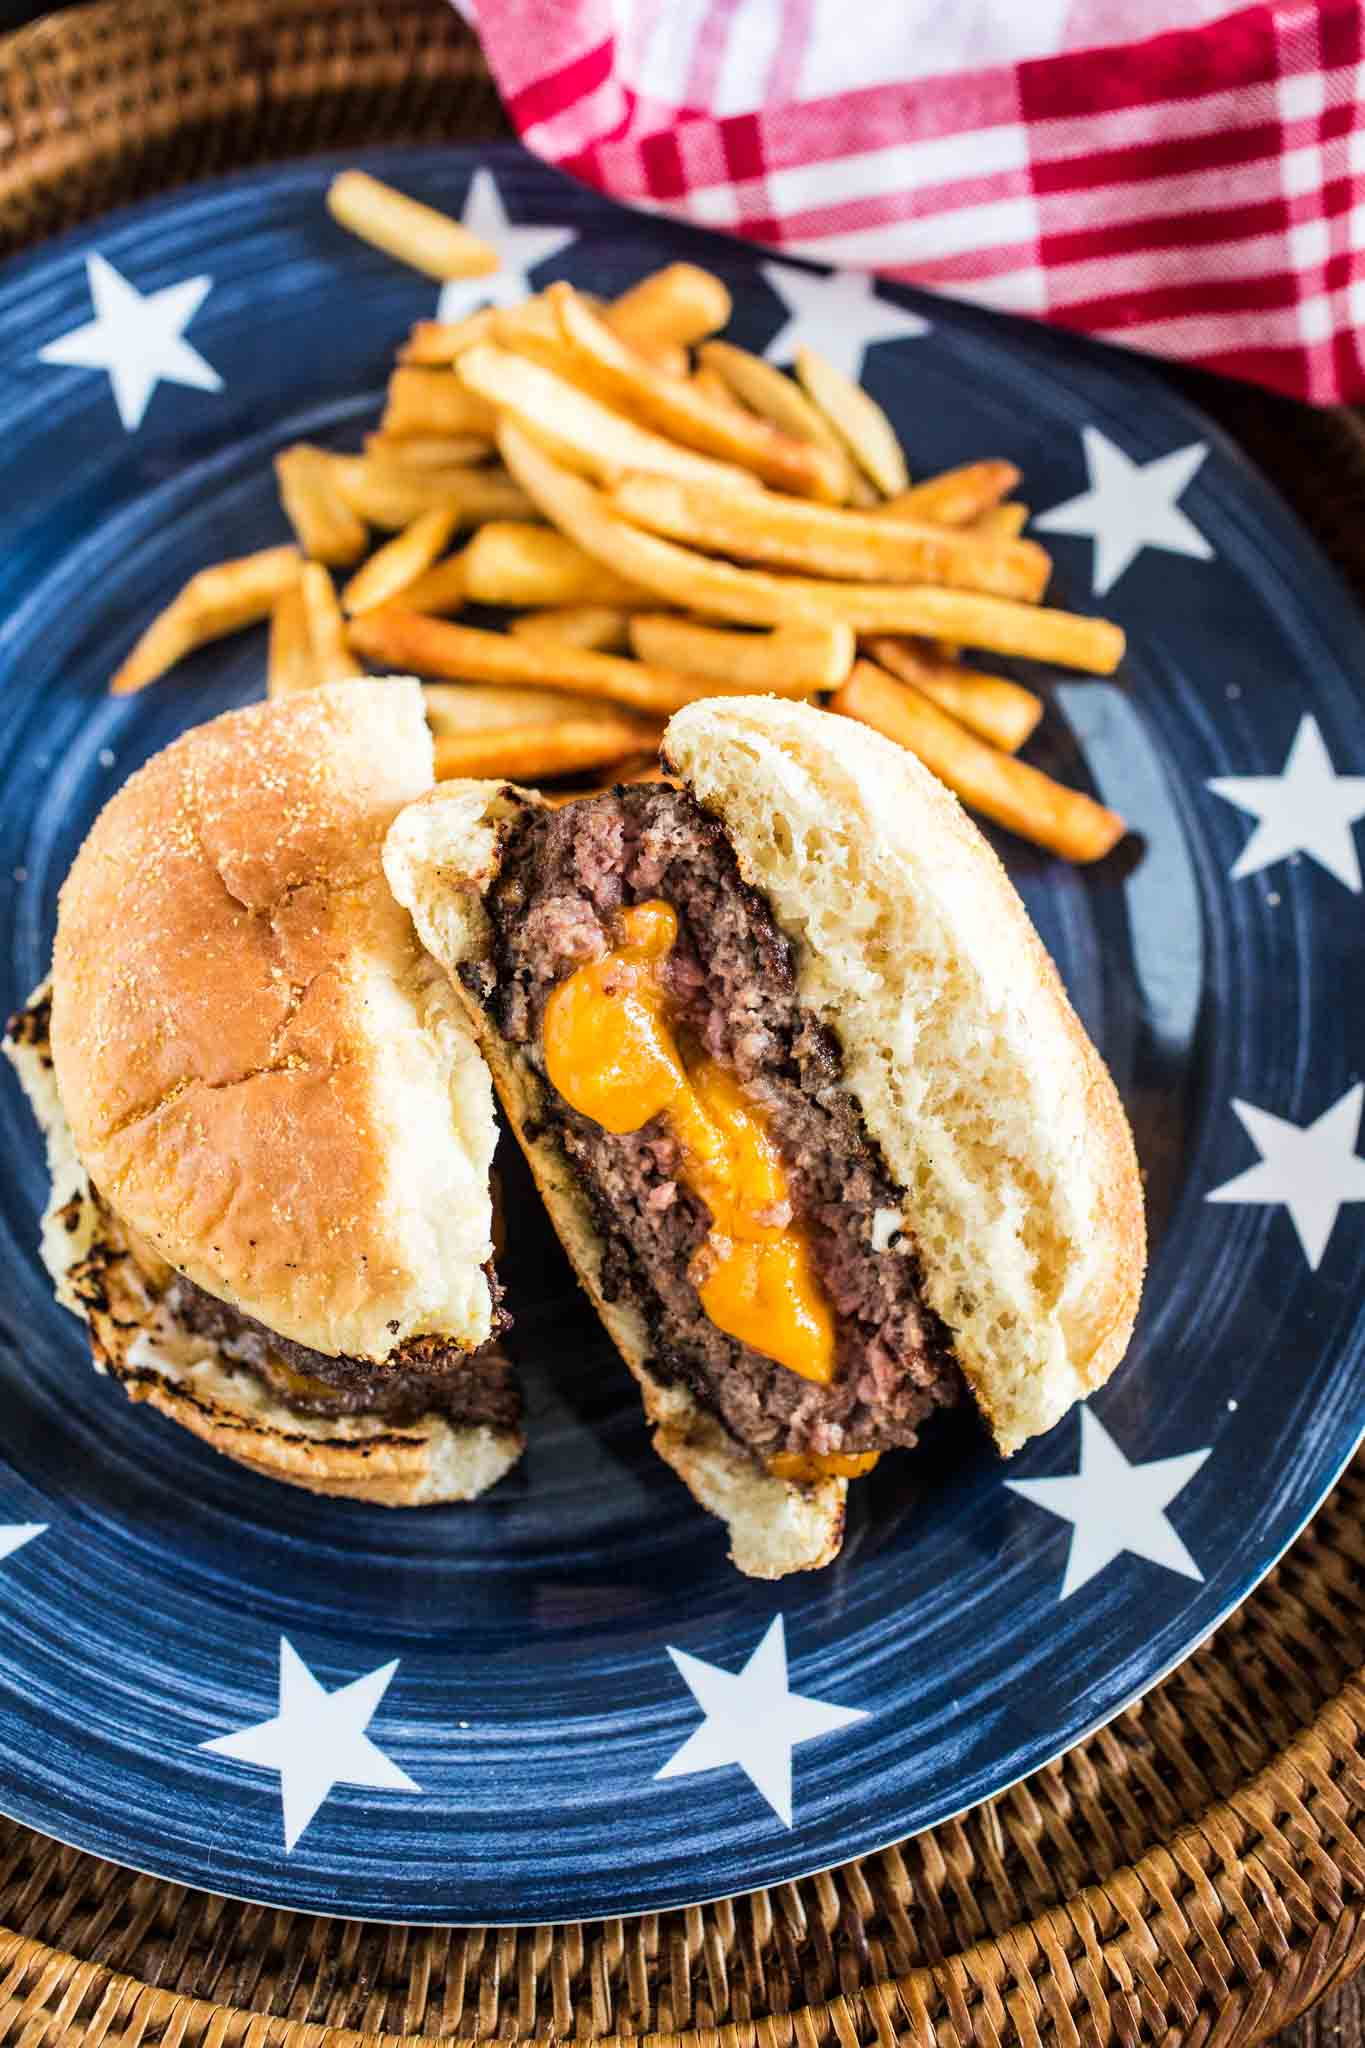 Juicy Lucy Burger | www.oliviascuisine.com | An iconic Minneapolis burger, stuffed with lots of cheese!